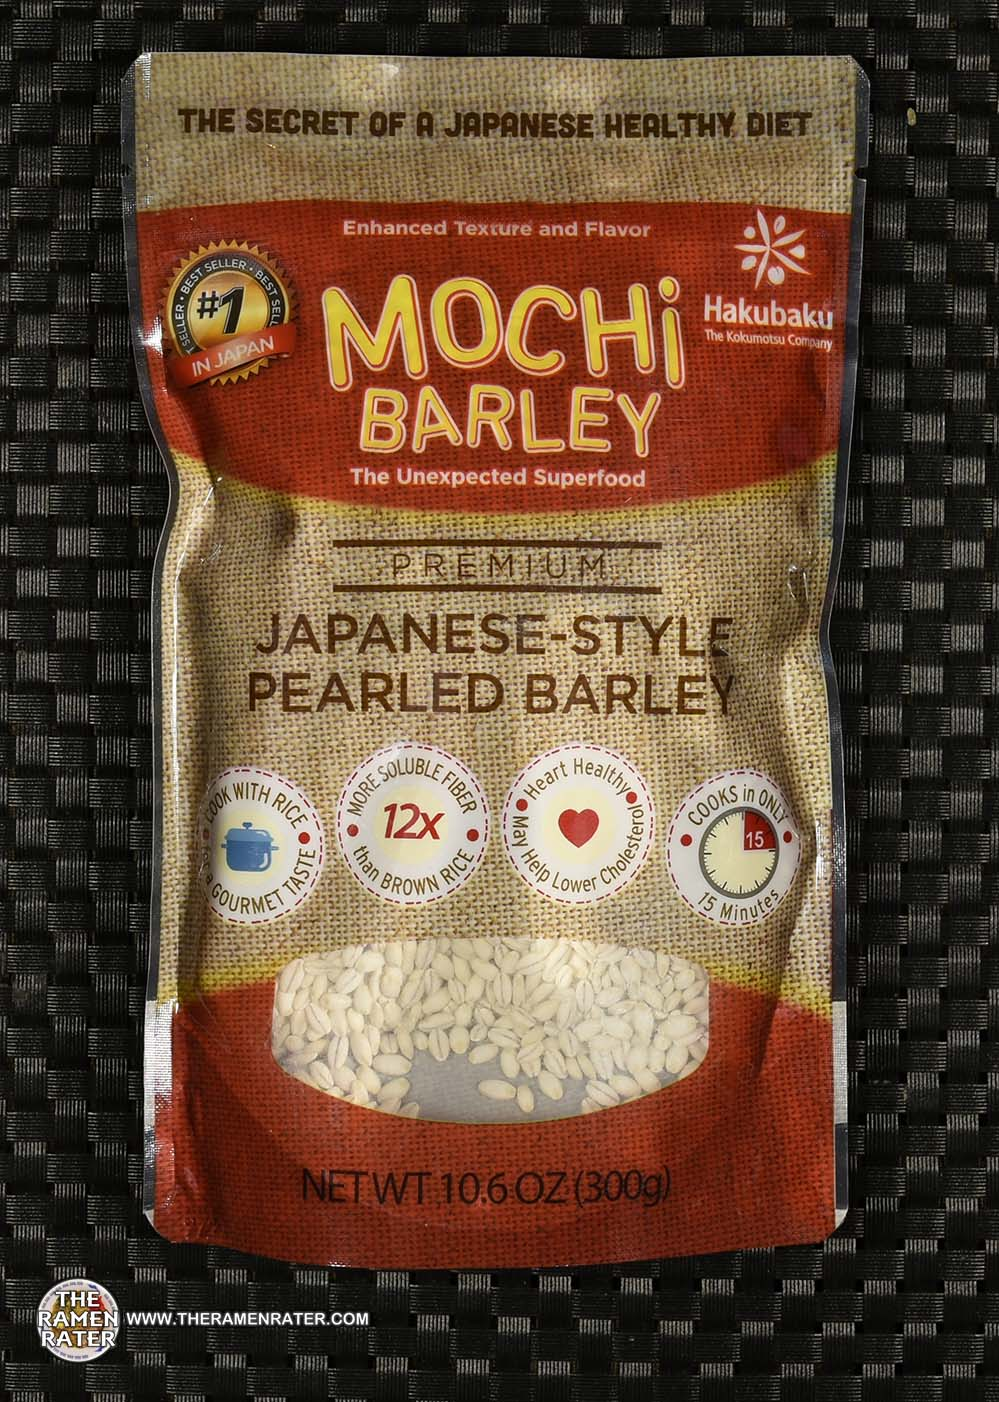 Meet The Manufacturer: Hakubaku Mochi Barley - Japan